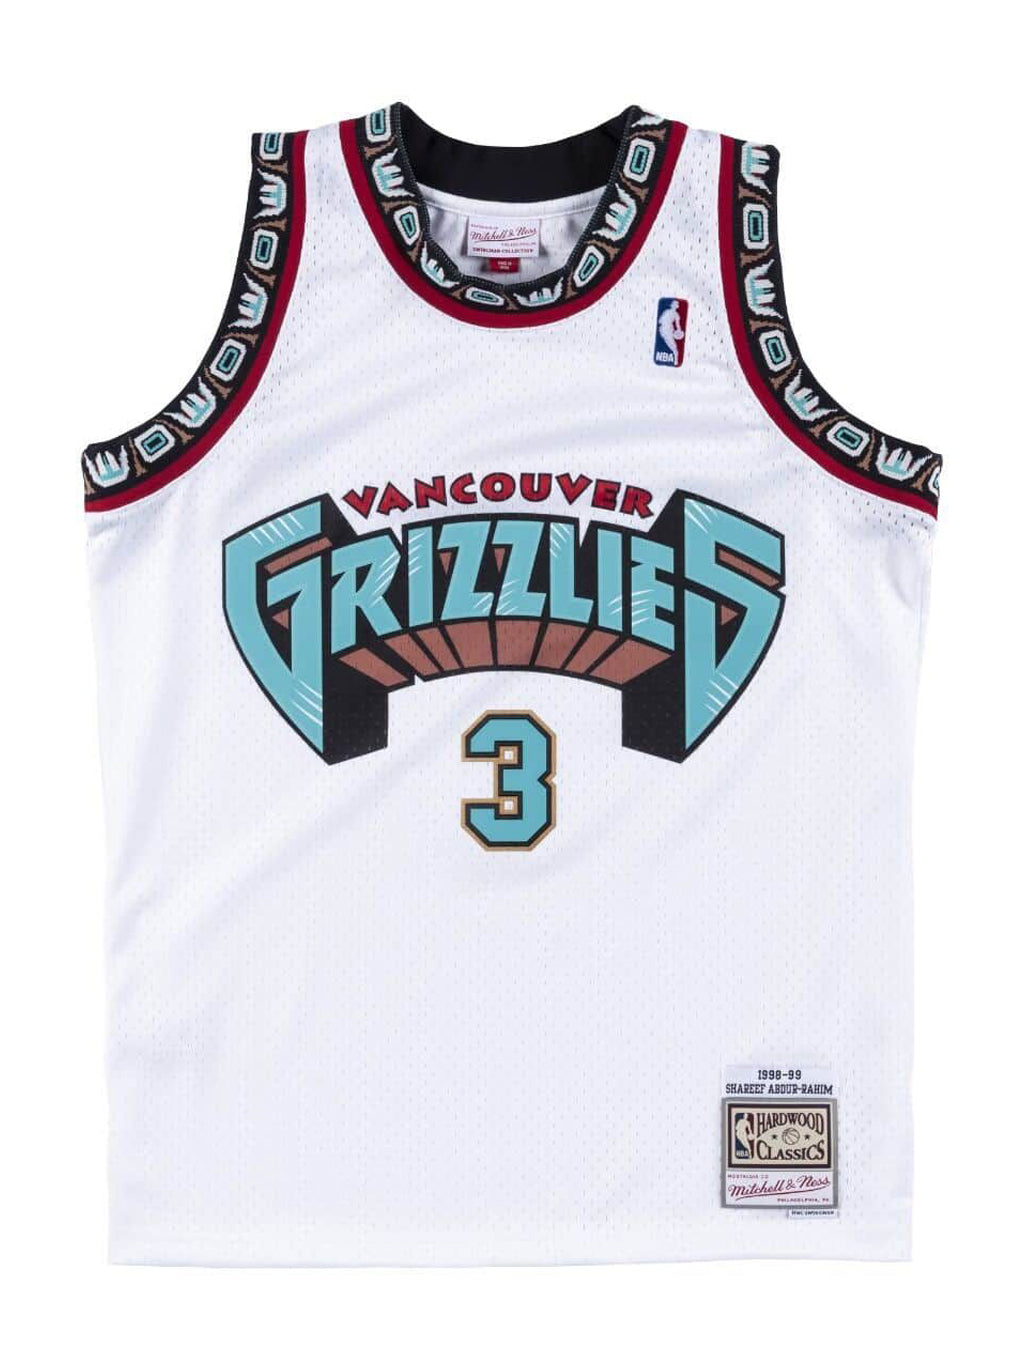 White NBA Vancouver Grizzlies Swingman 1998-99 Jersey